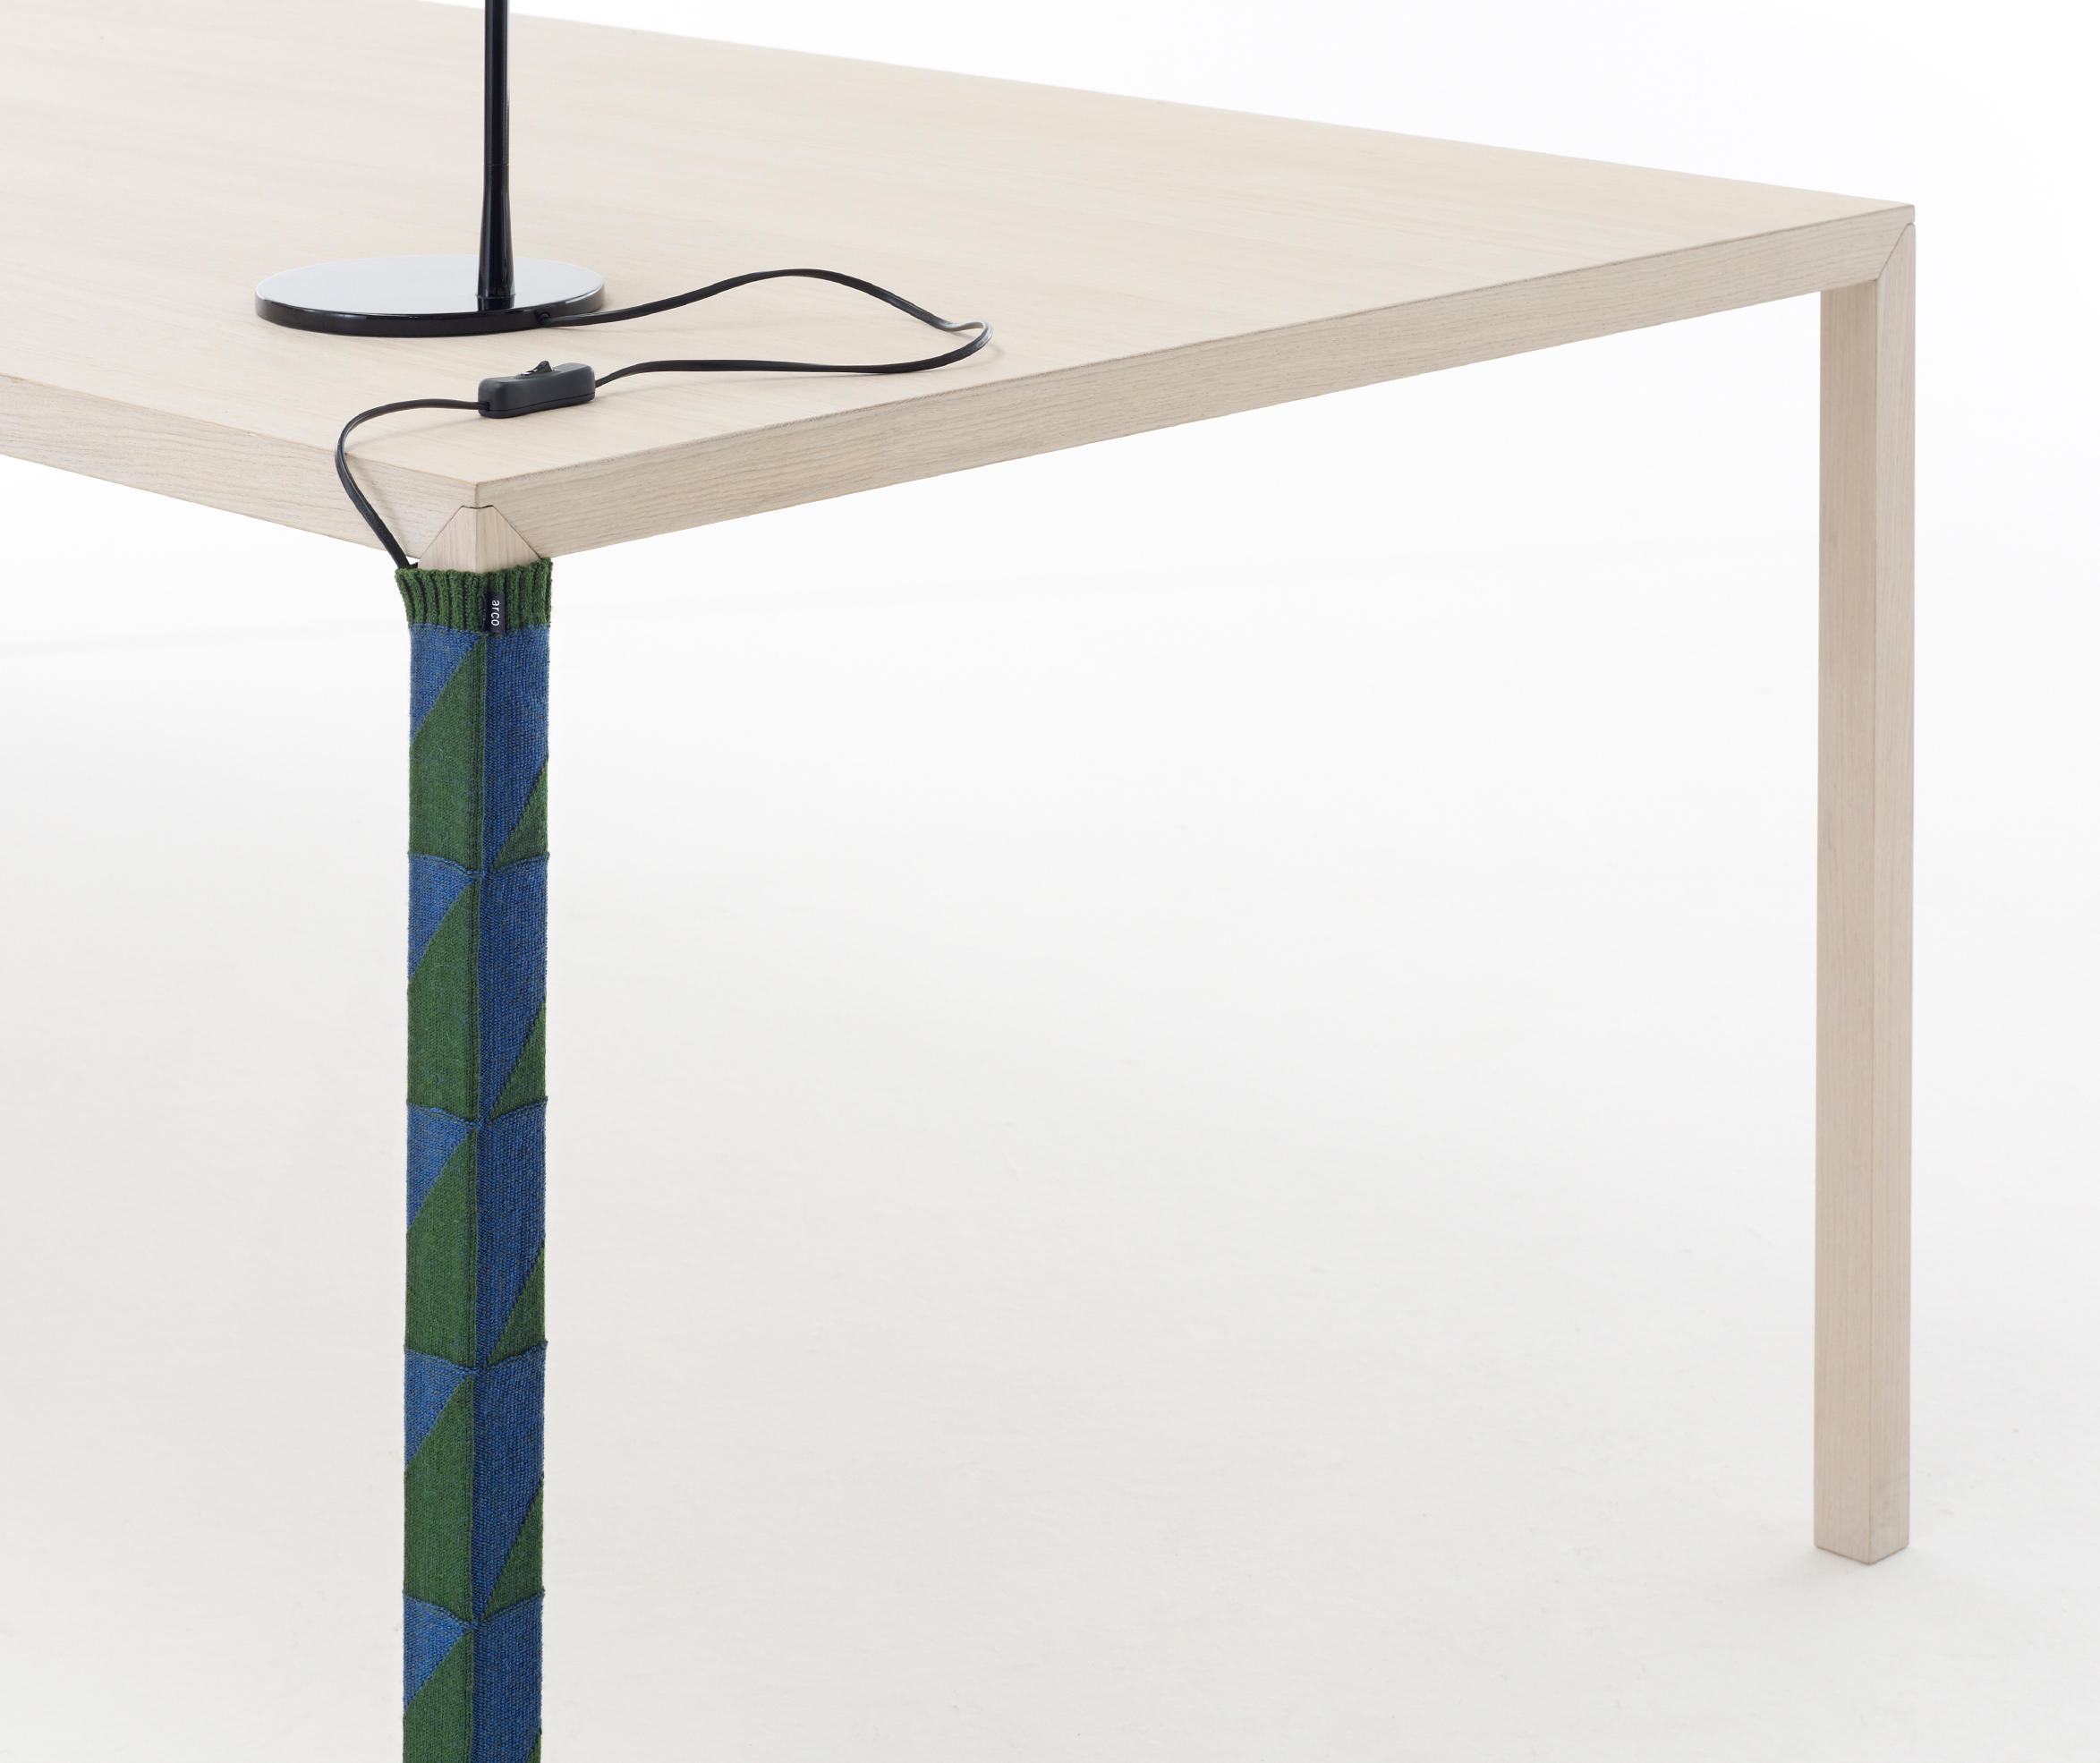 Tv Meubel Denver.Cable Sock Table Equipment From Arco Architonic